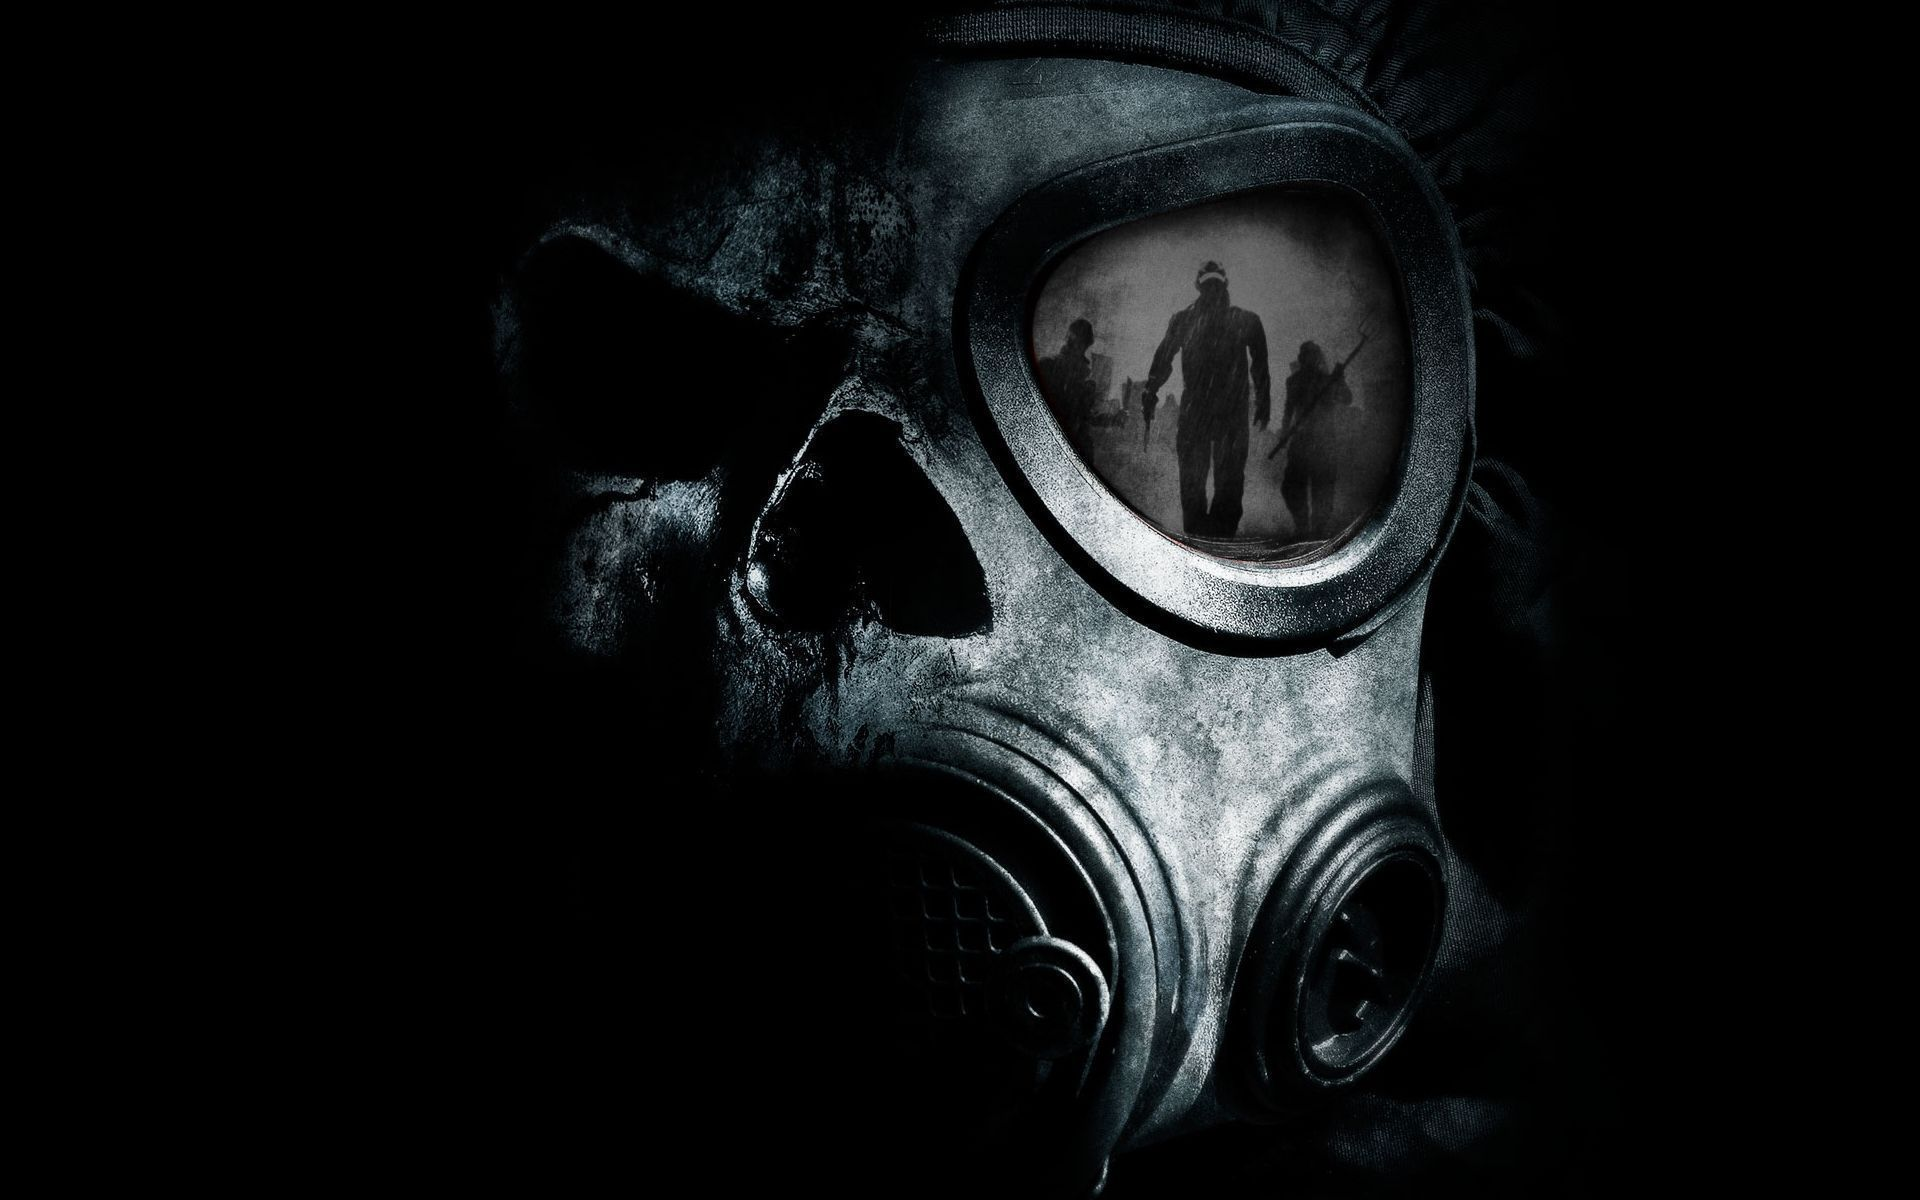 Apocalyptic HD Wallpaper